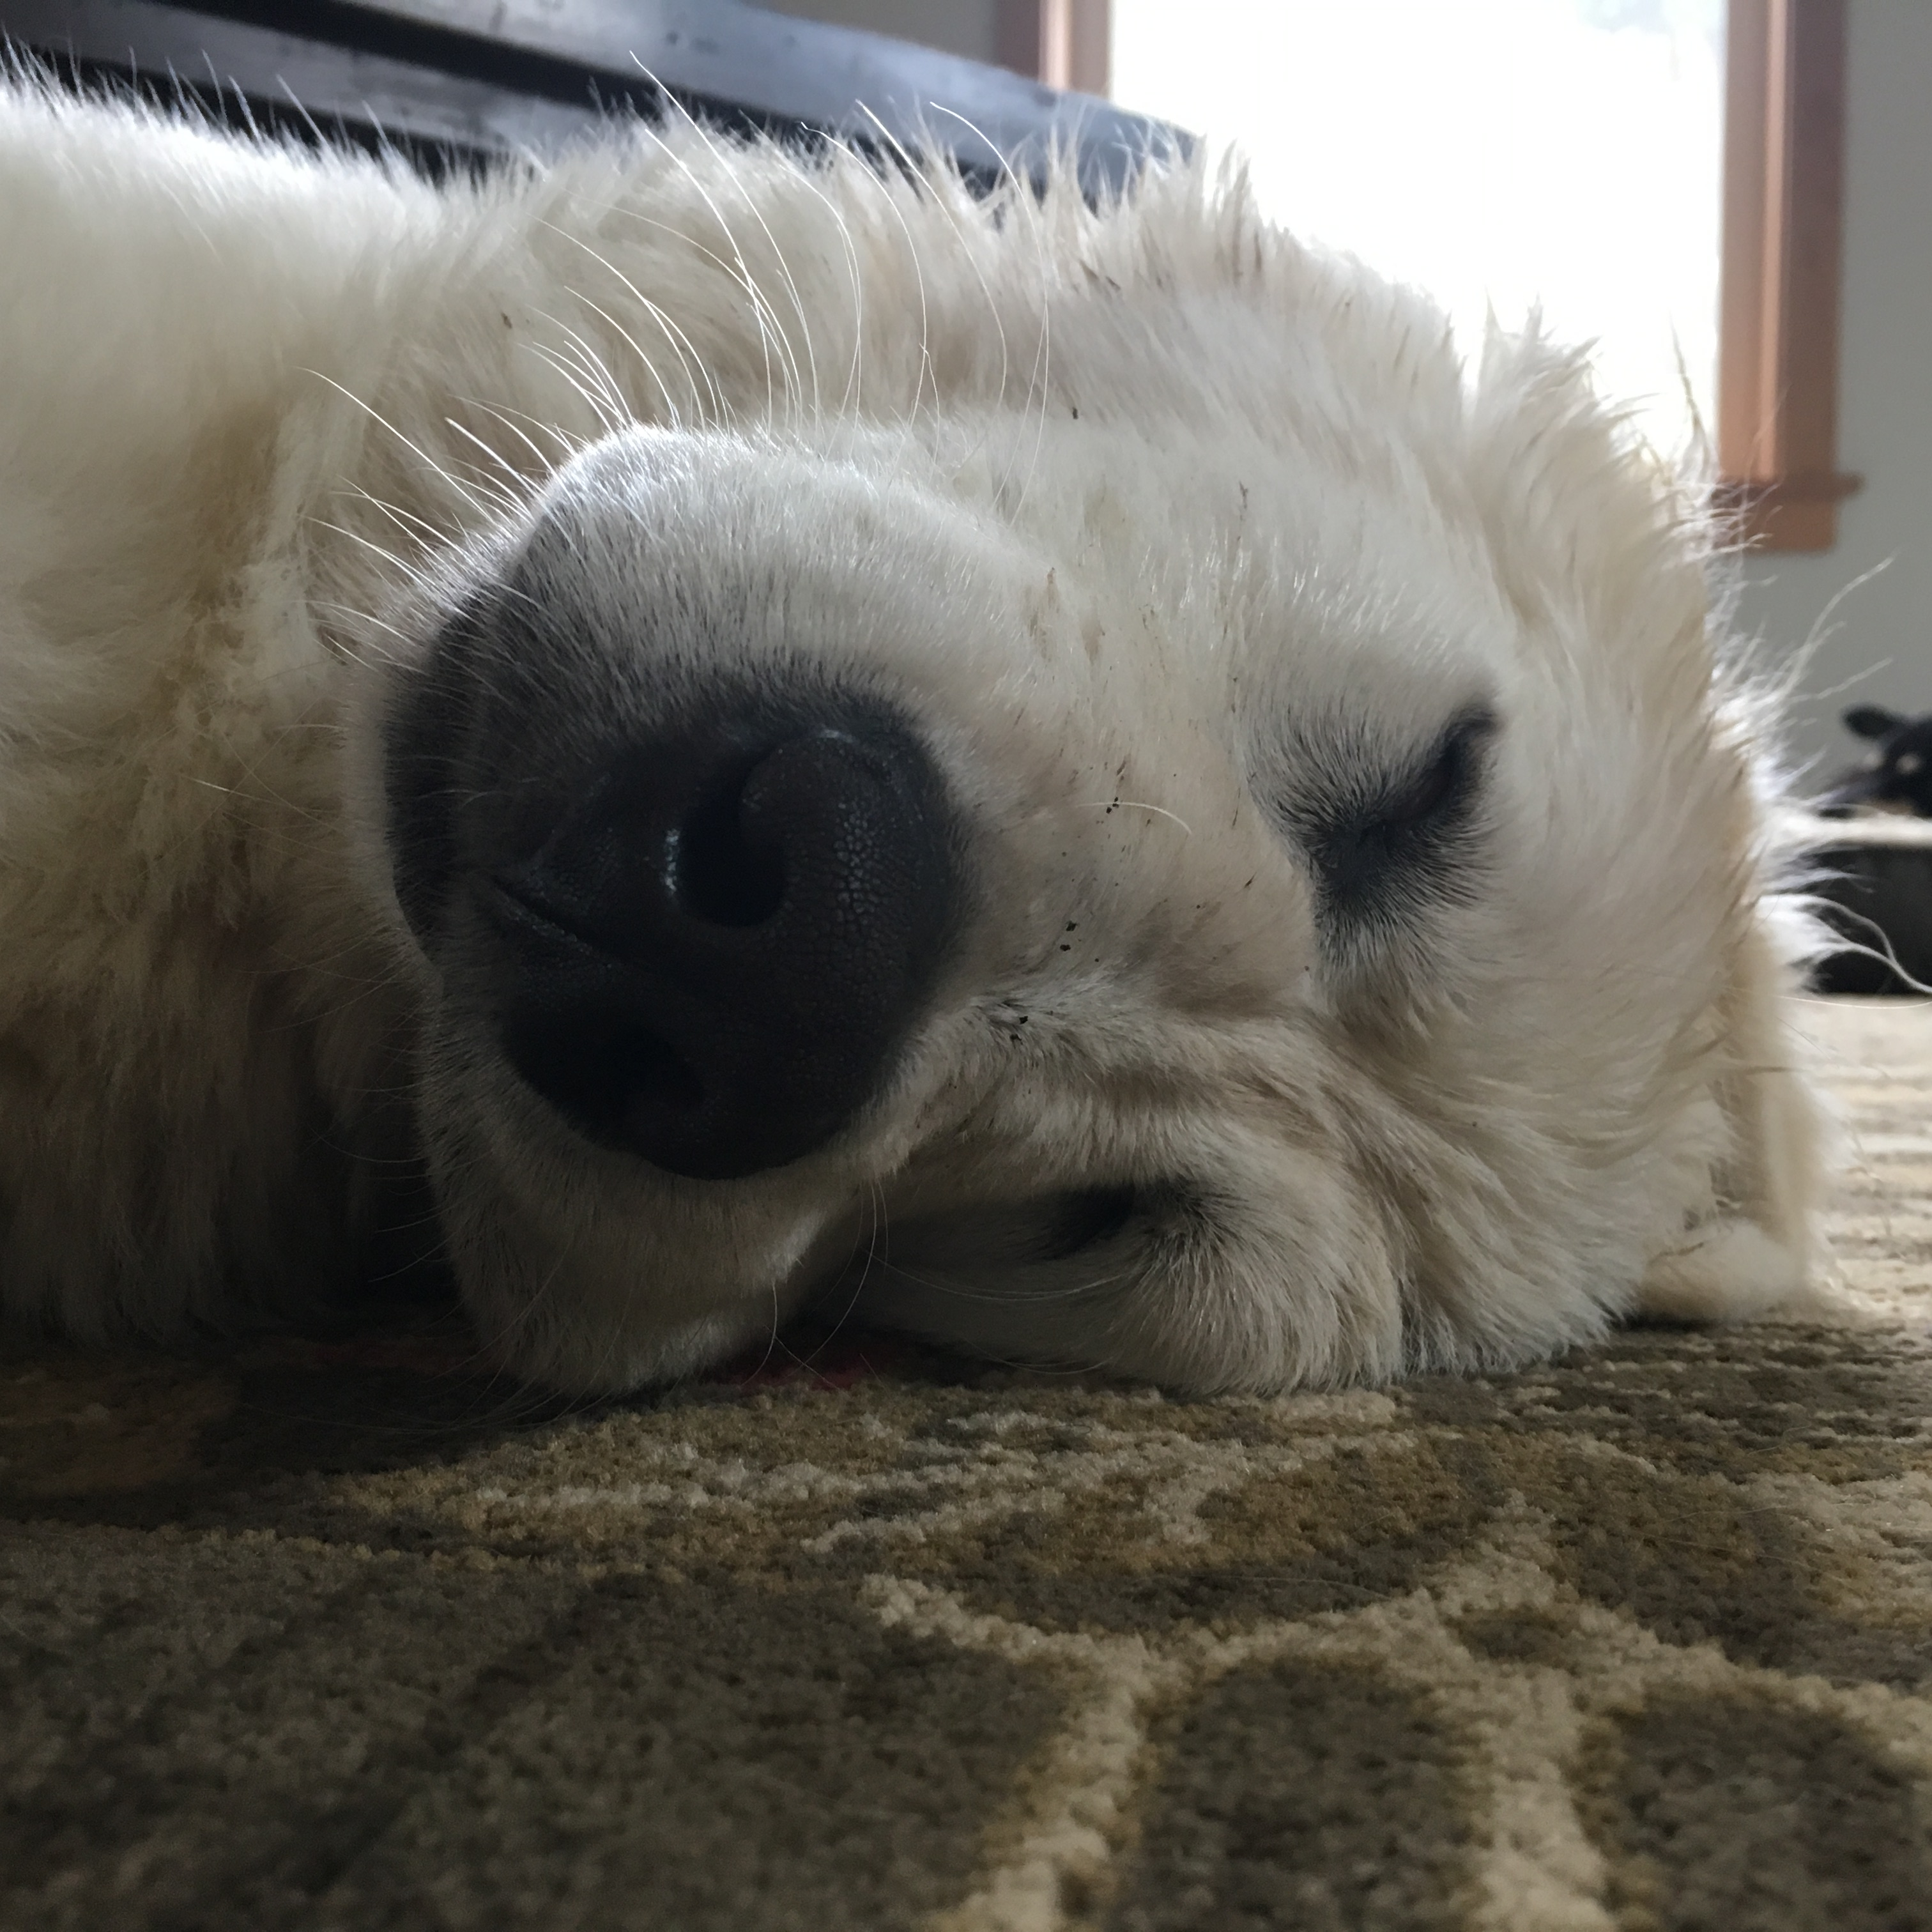 Livestock Guardian Dog - Rowan takes a nap